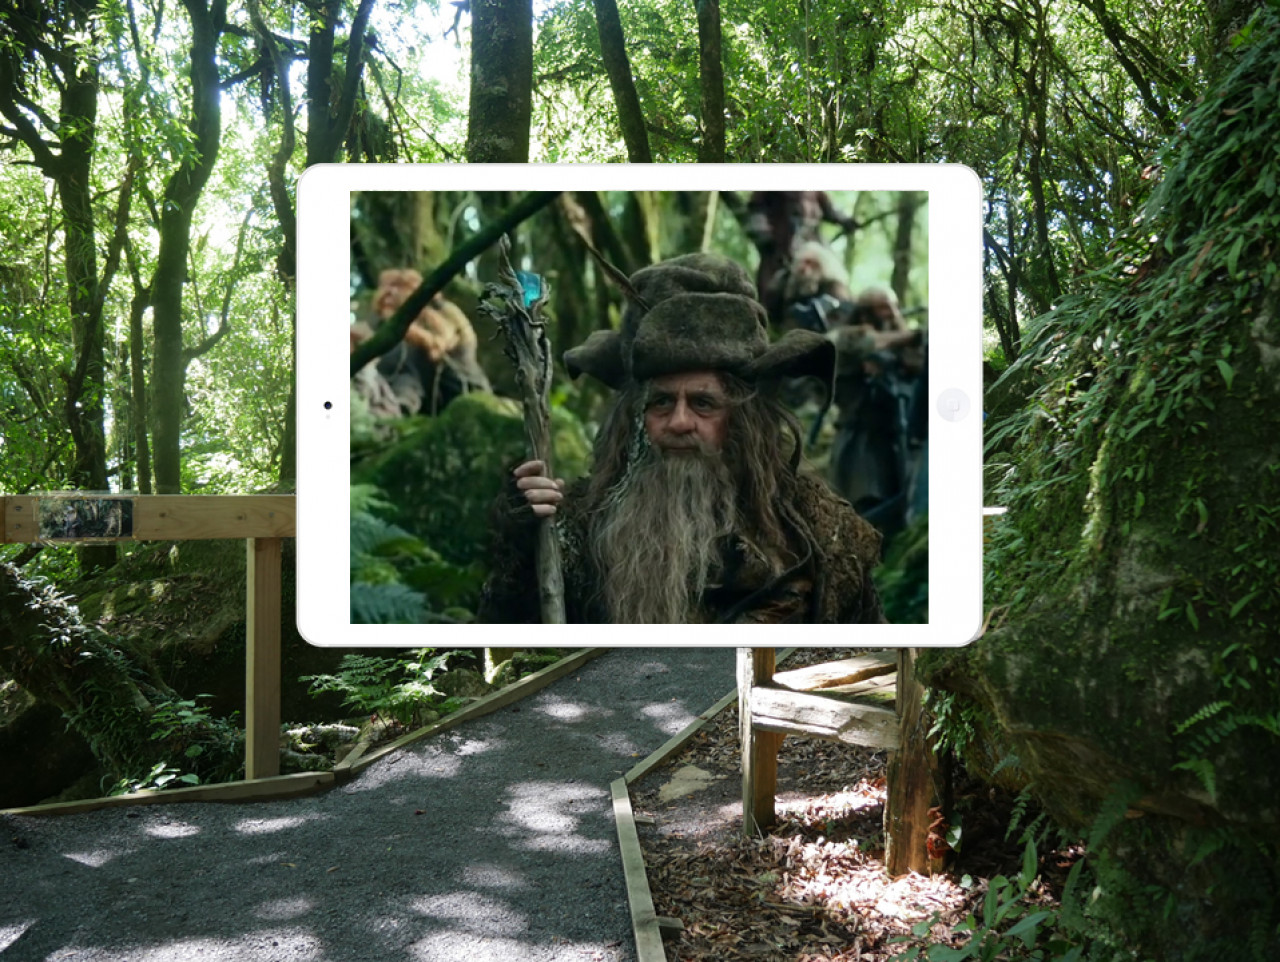 ... the wizard Radagast arrives, bringing bad news about a shadow of an ancient horror that has risen again.